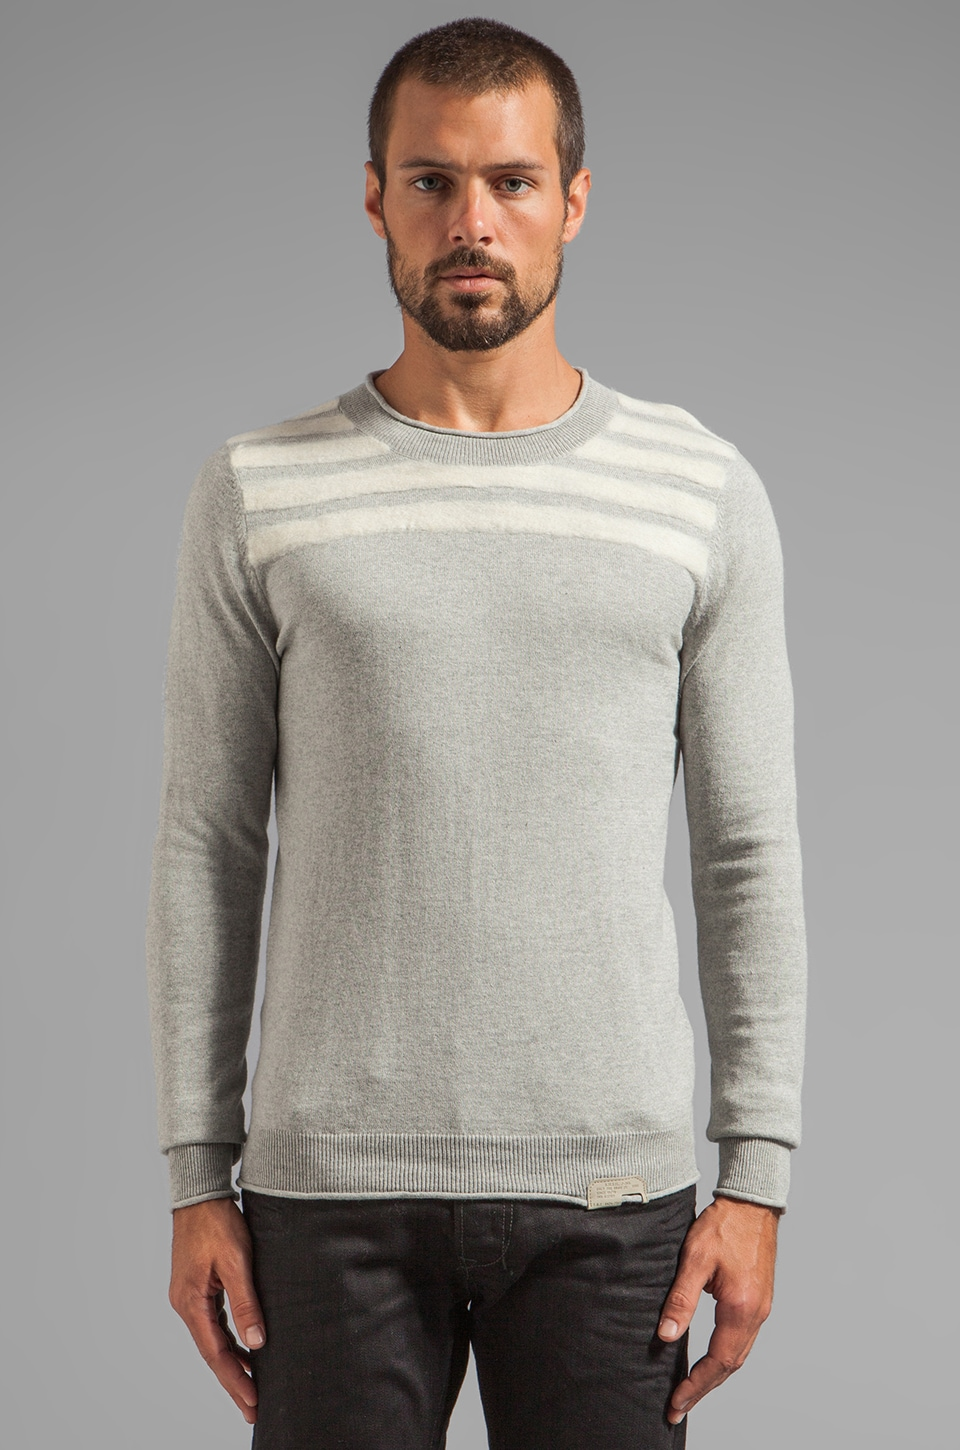 Diesel Gila Sweater in Heather Grey